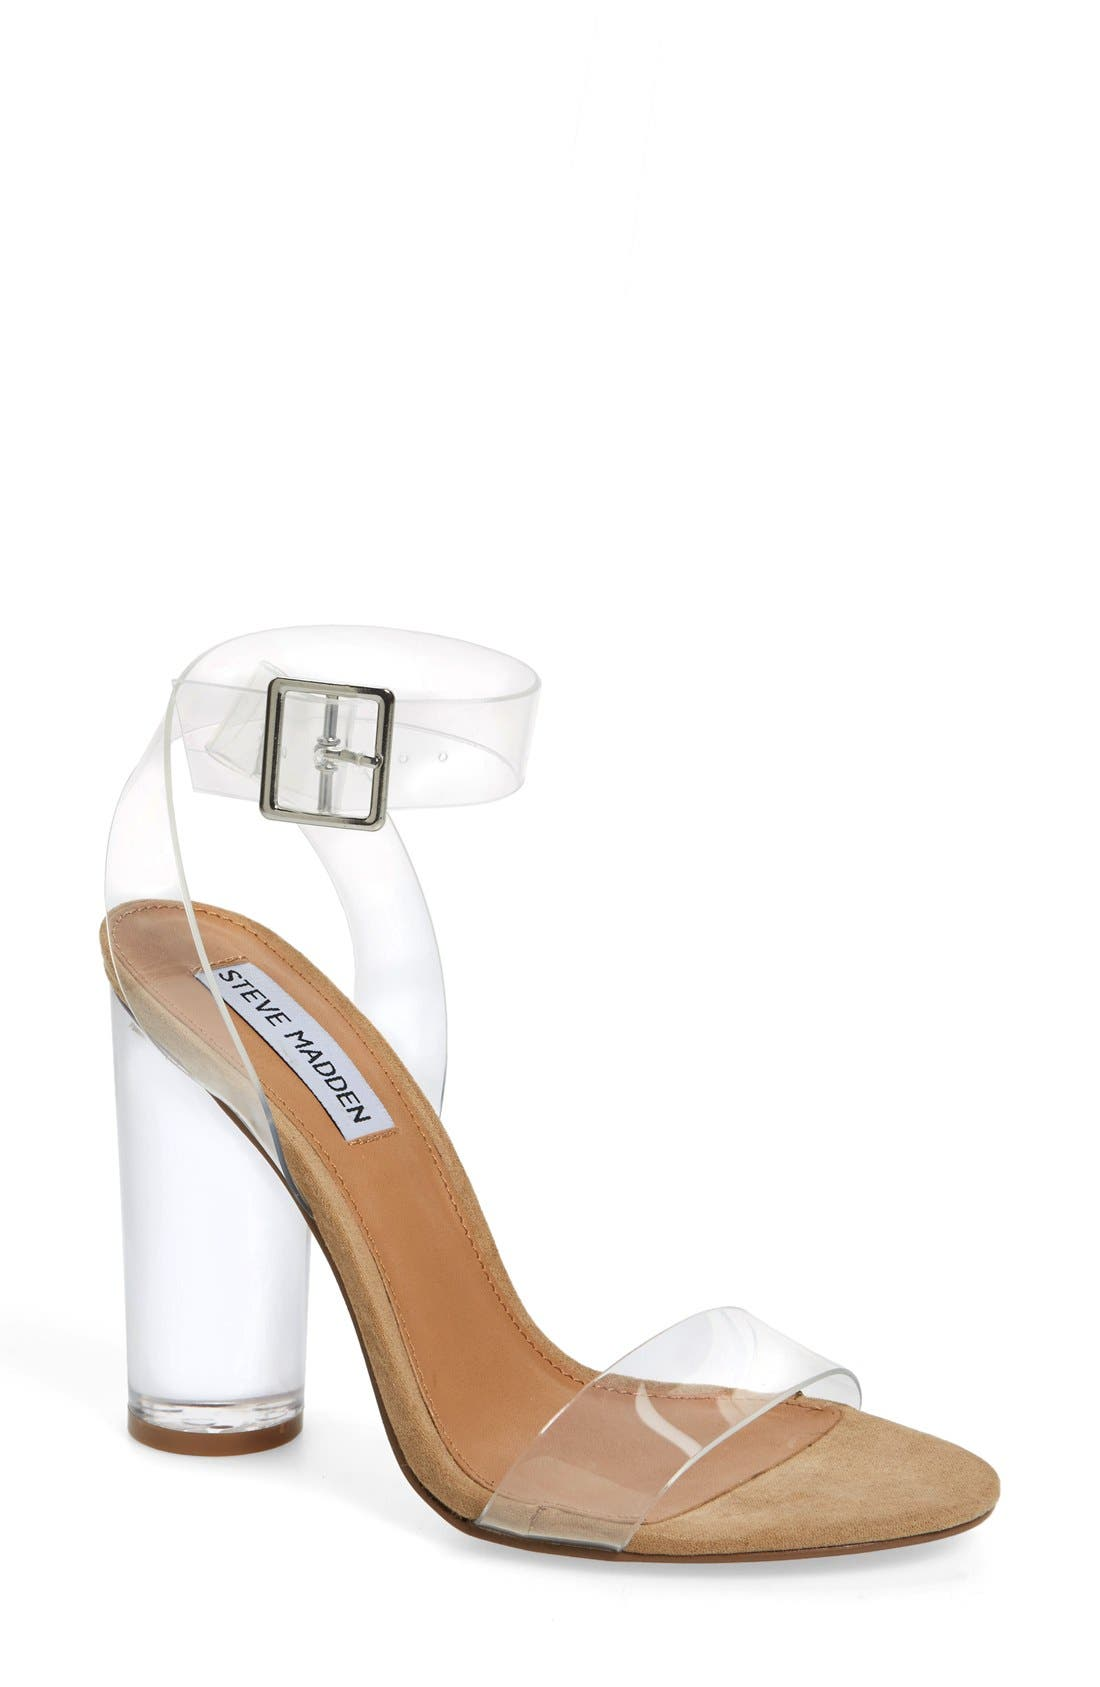 Clearer Column Heel Sandal,                         Main,                         color, Clear